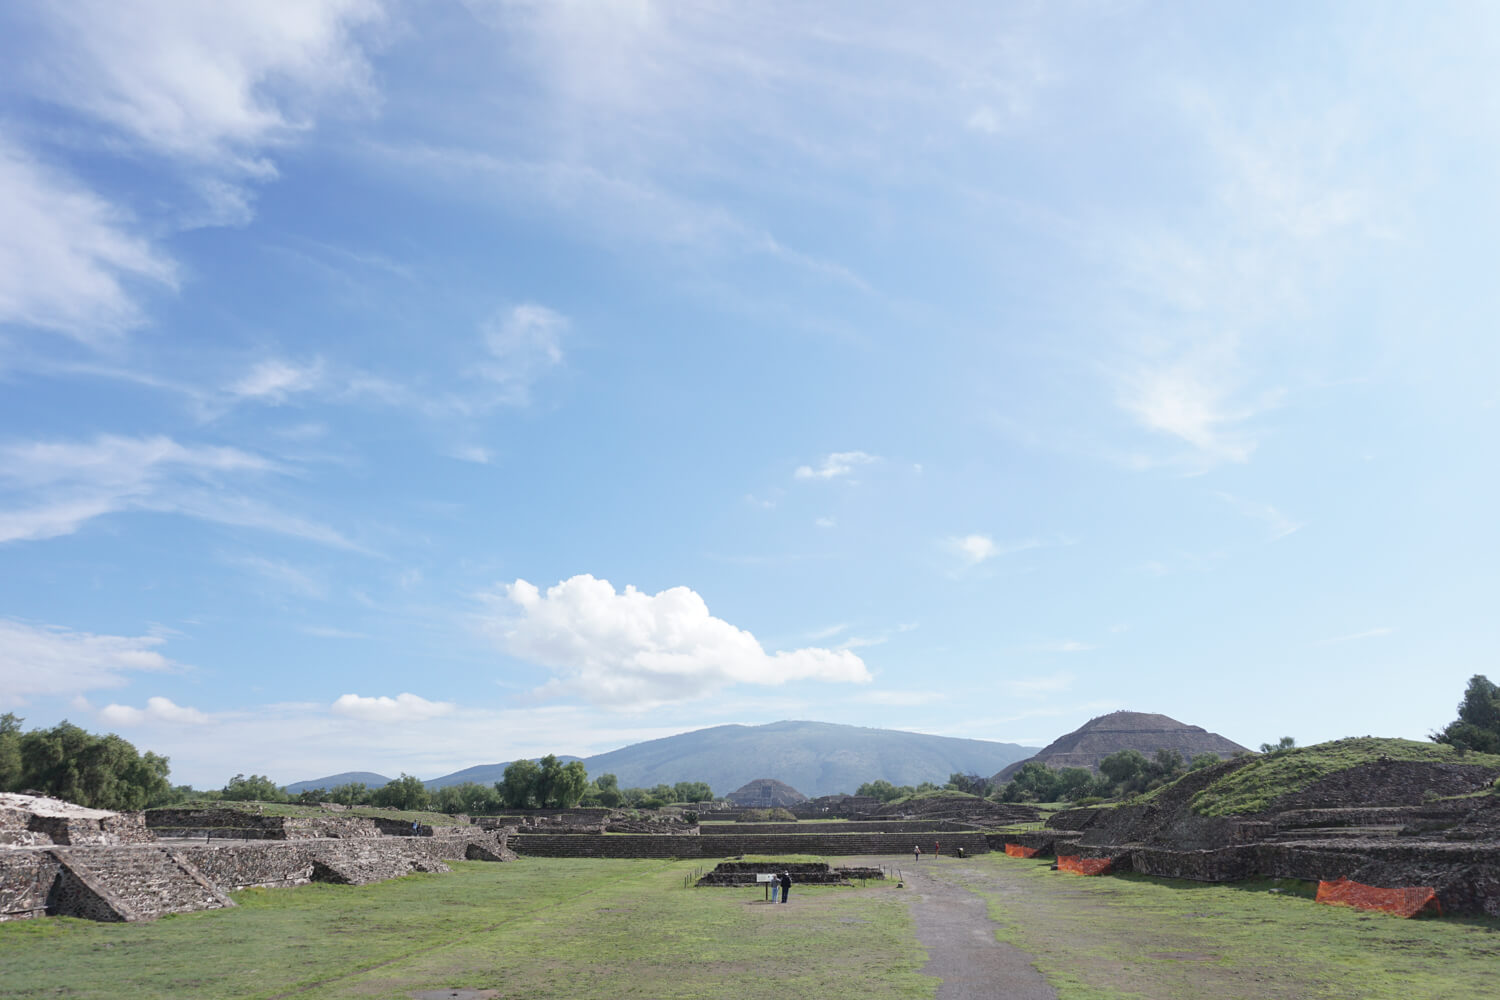 What To Do in Mexico City: Teotihuacan Pyramids Tour